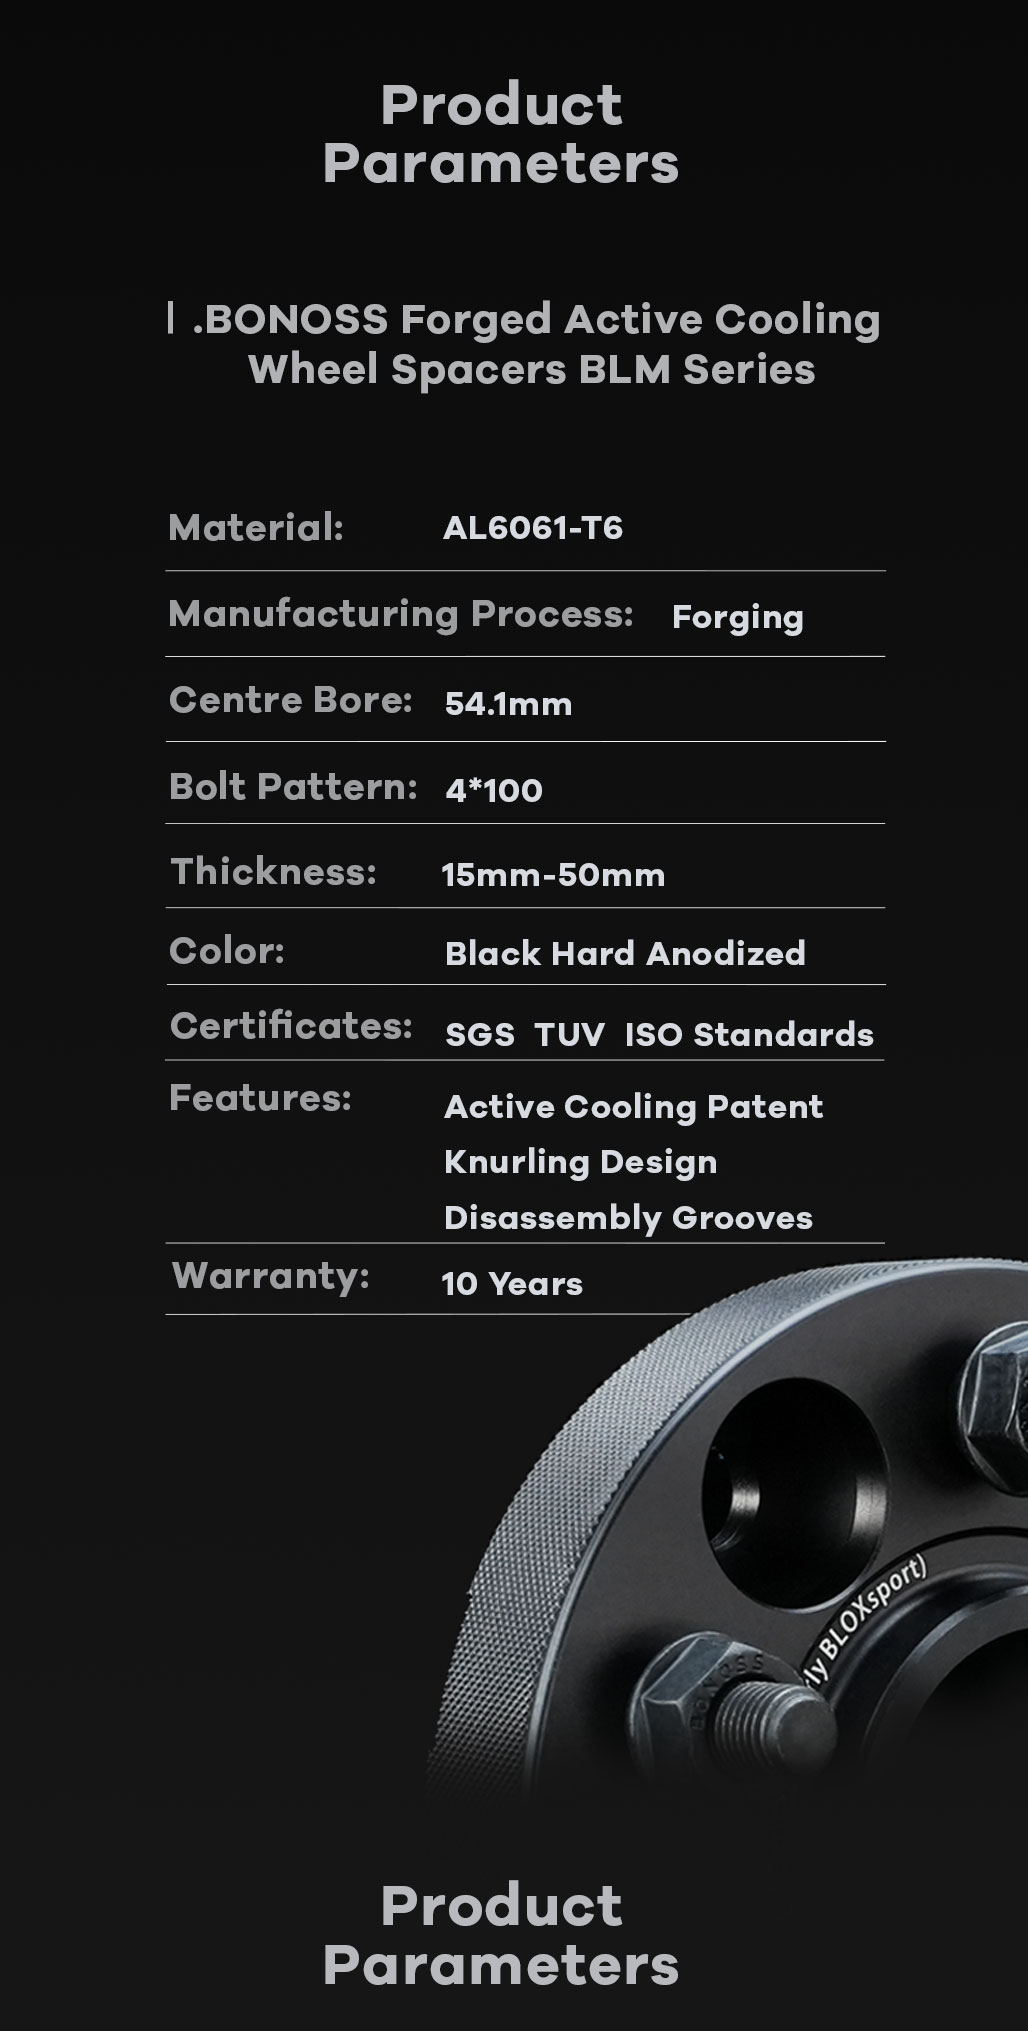 BONOSS Forged Active Cooling Hubcentric Wheel Spacers 4x100 Wheel Adapters AL6061-T6 Material CB54.1